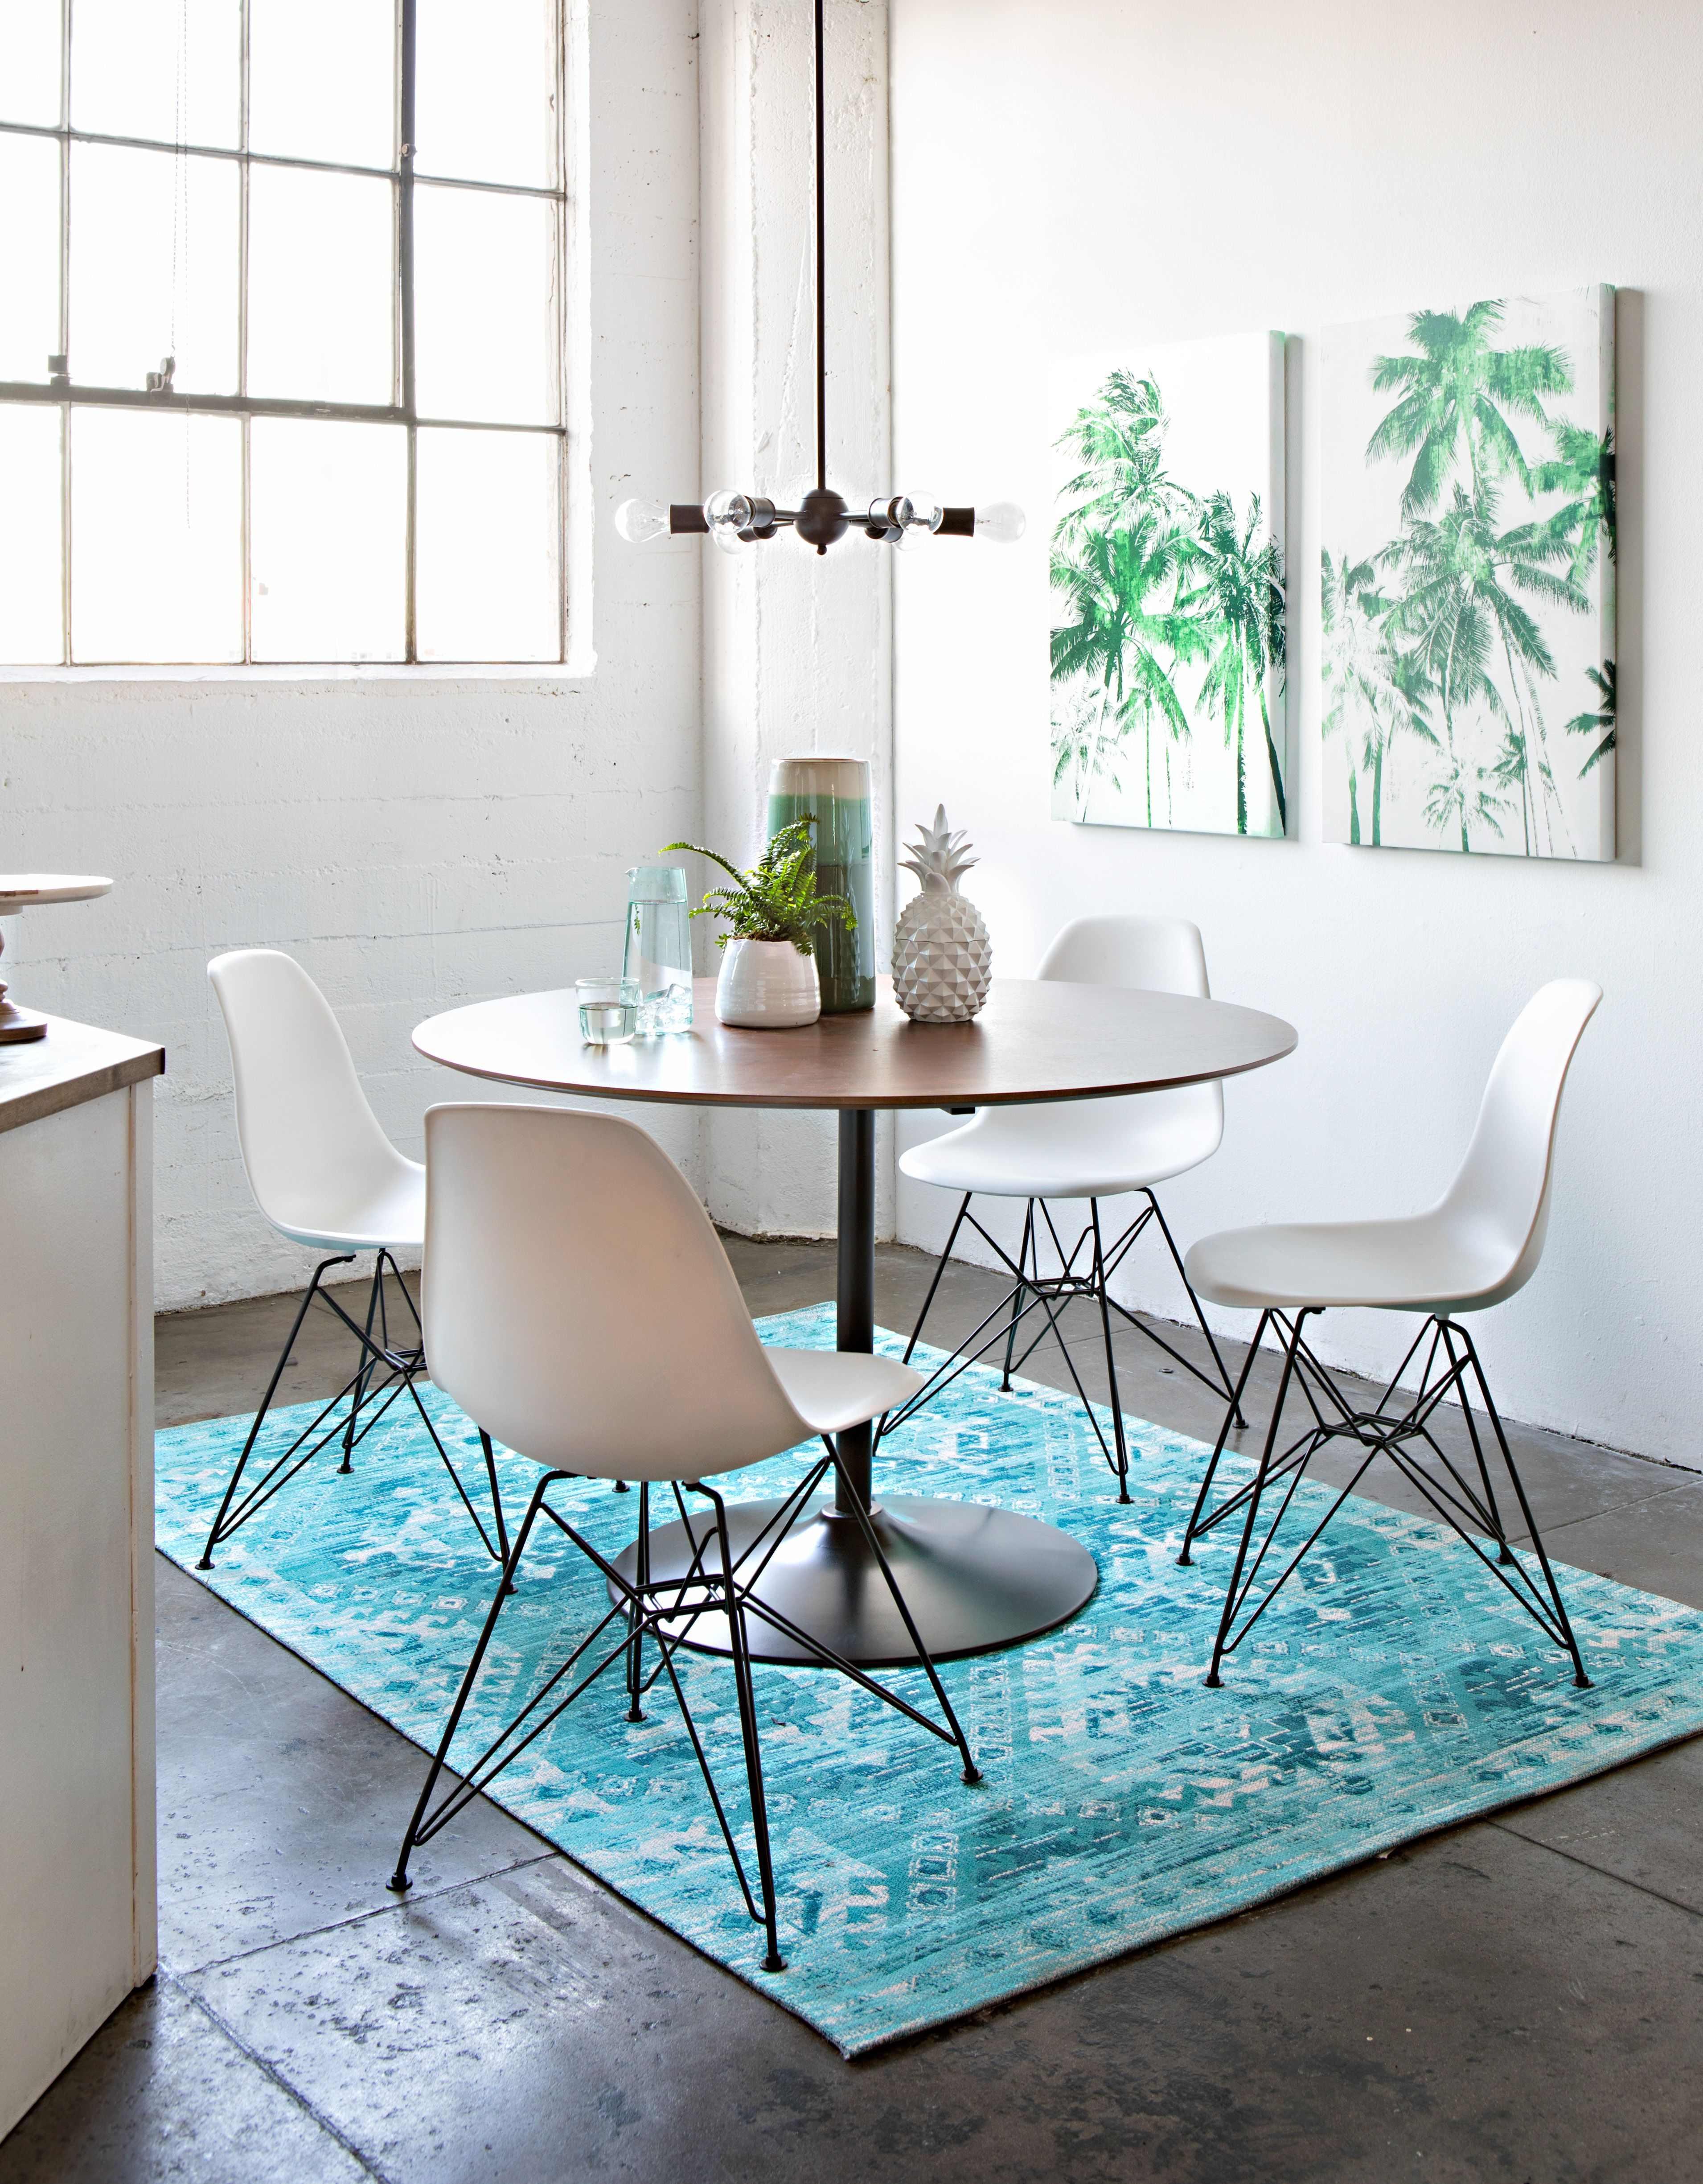 Loft Spaces Vespa 5 Piece Dining Set Every Meal Is Easy And Casual With Our Vespa Dining Table And Al White Side Chair Modern Dining Room Dining Room Design